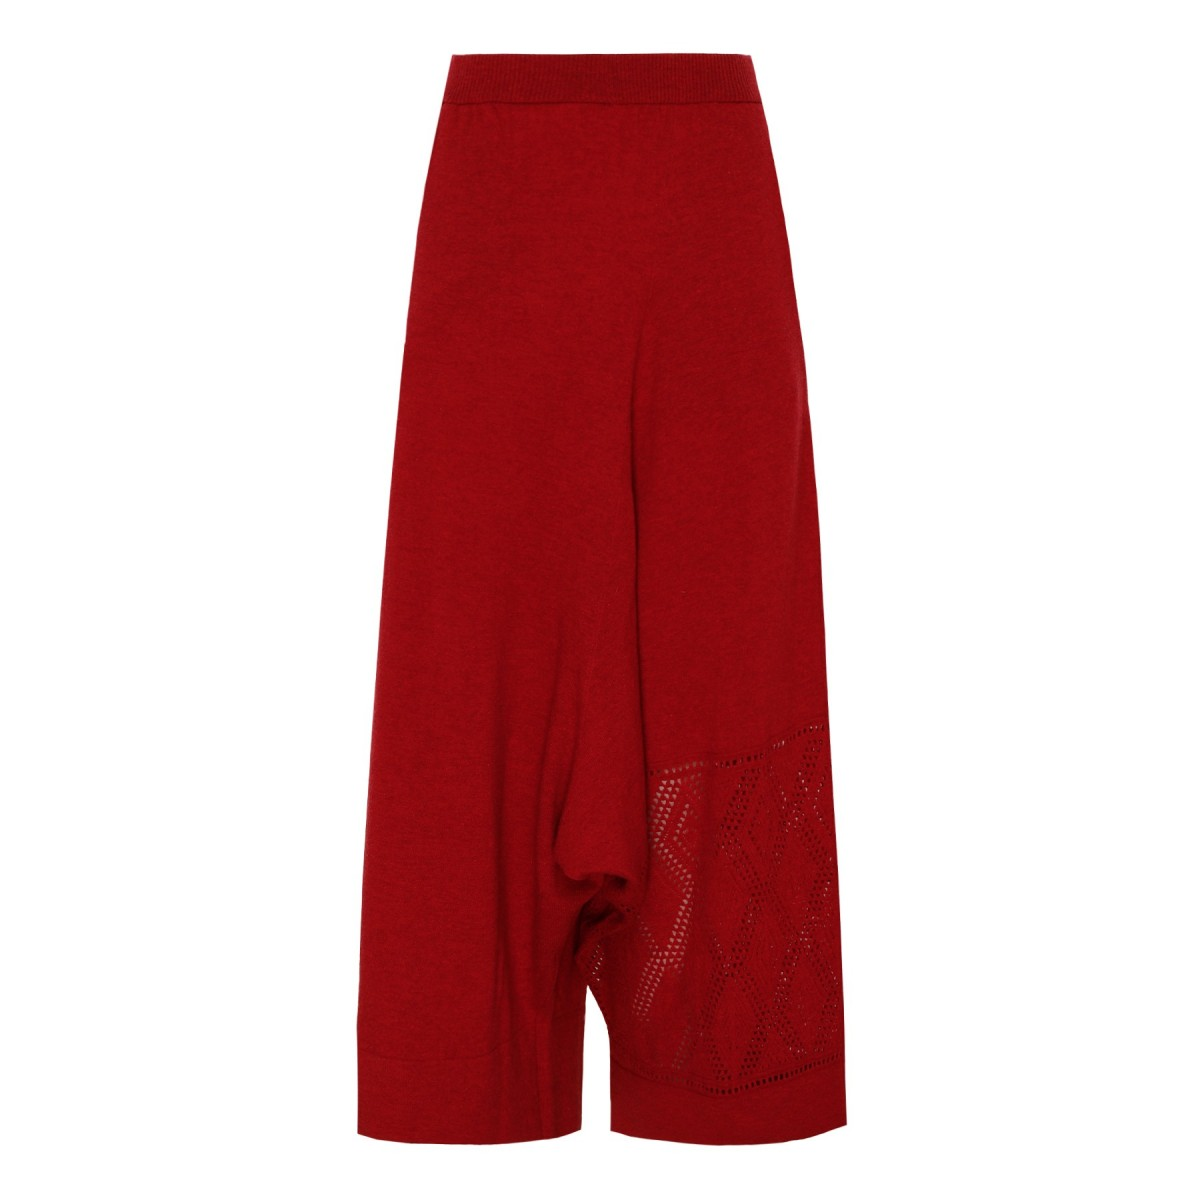 Fire Red Wool Pants